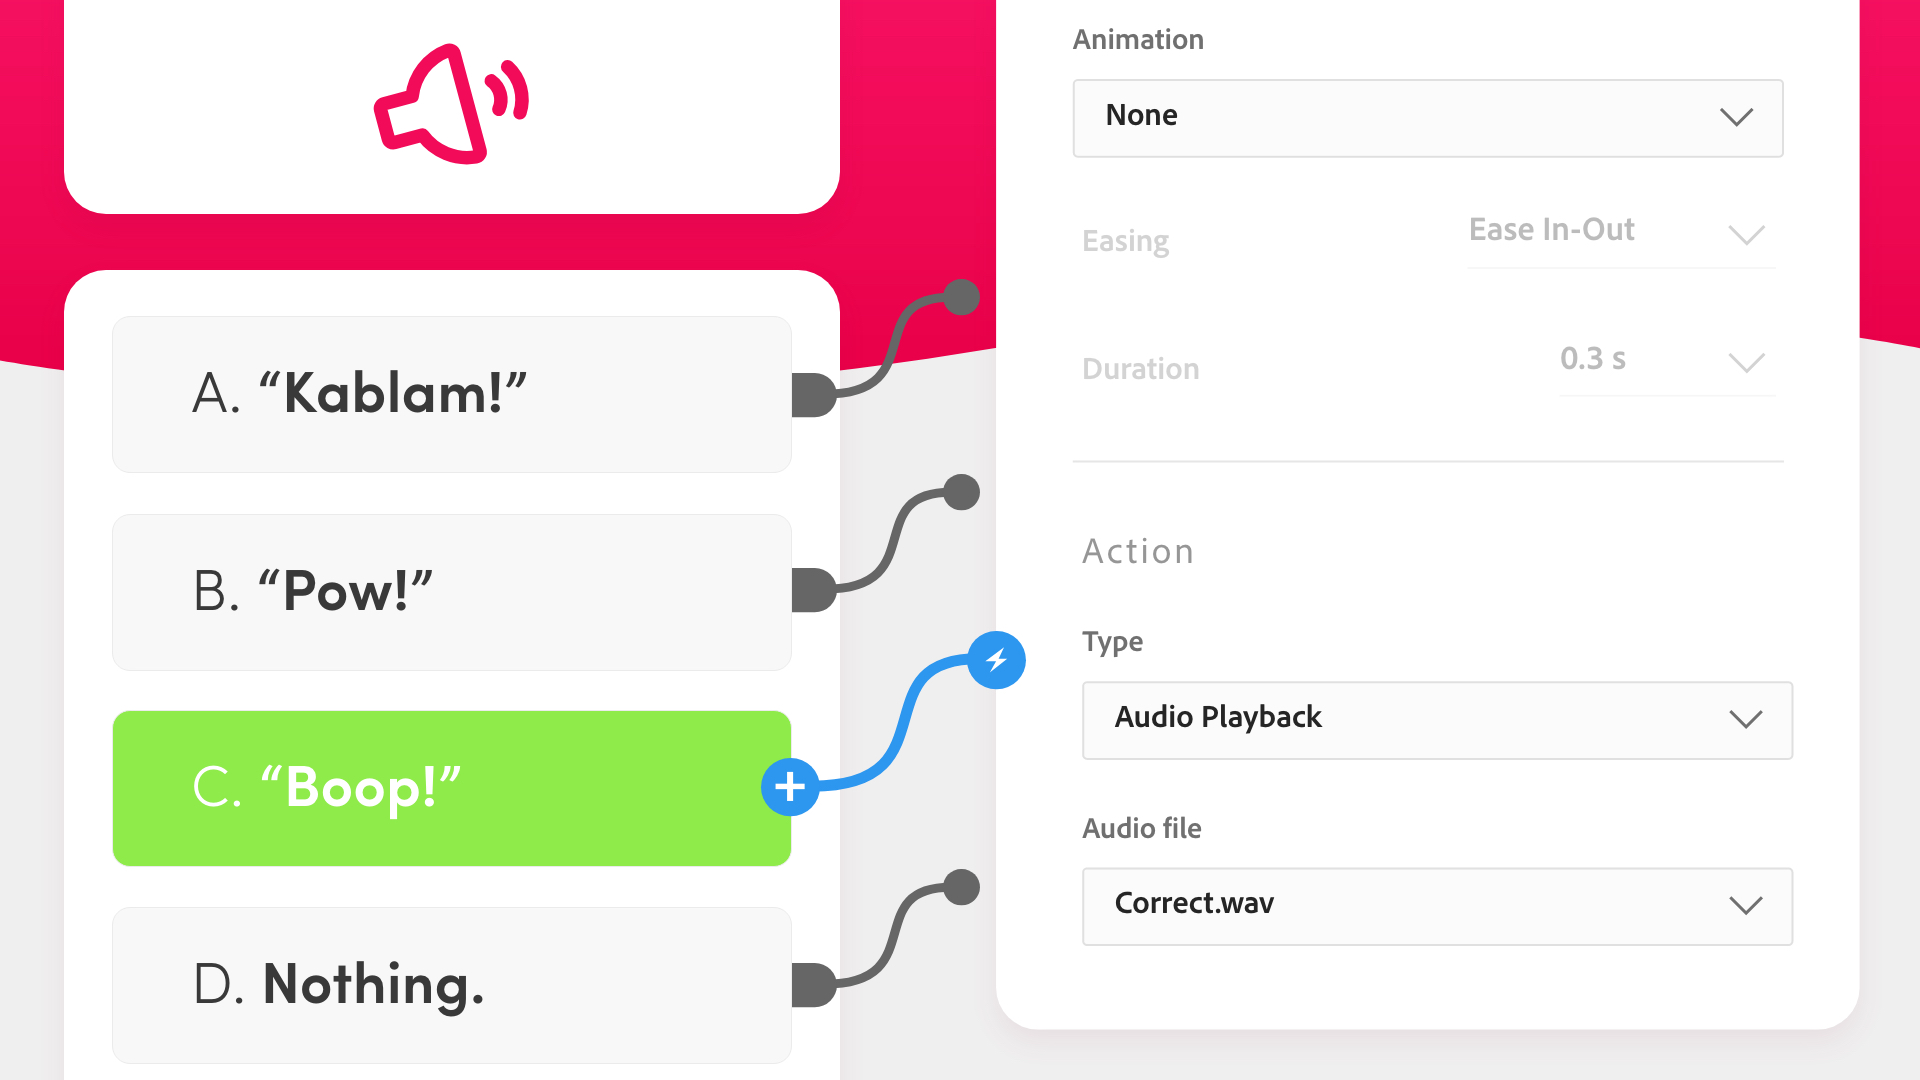 Adobe XD brings audio playback to prototyping - 9to5Mac